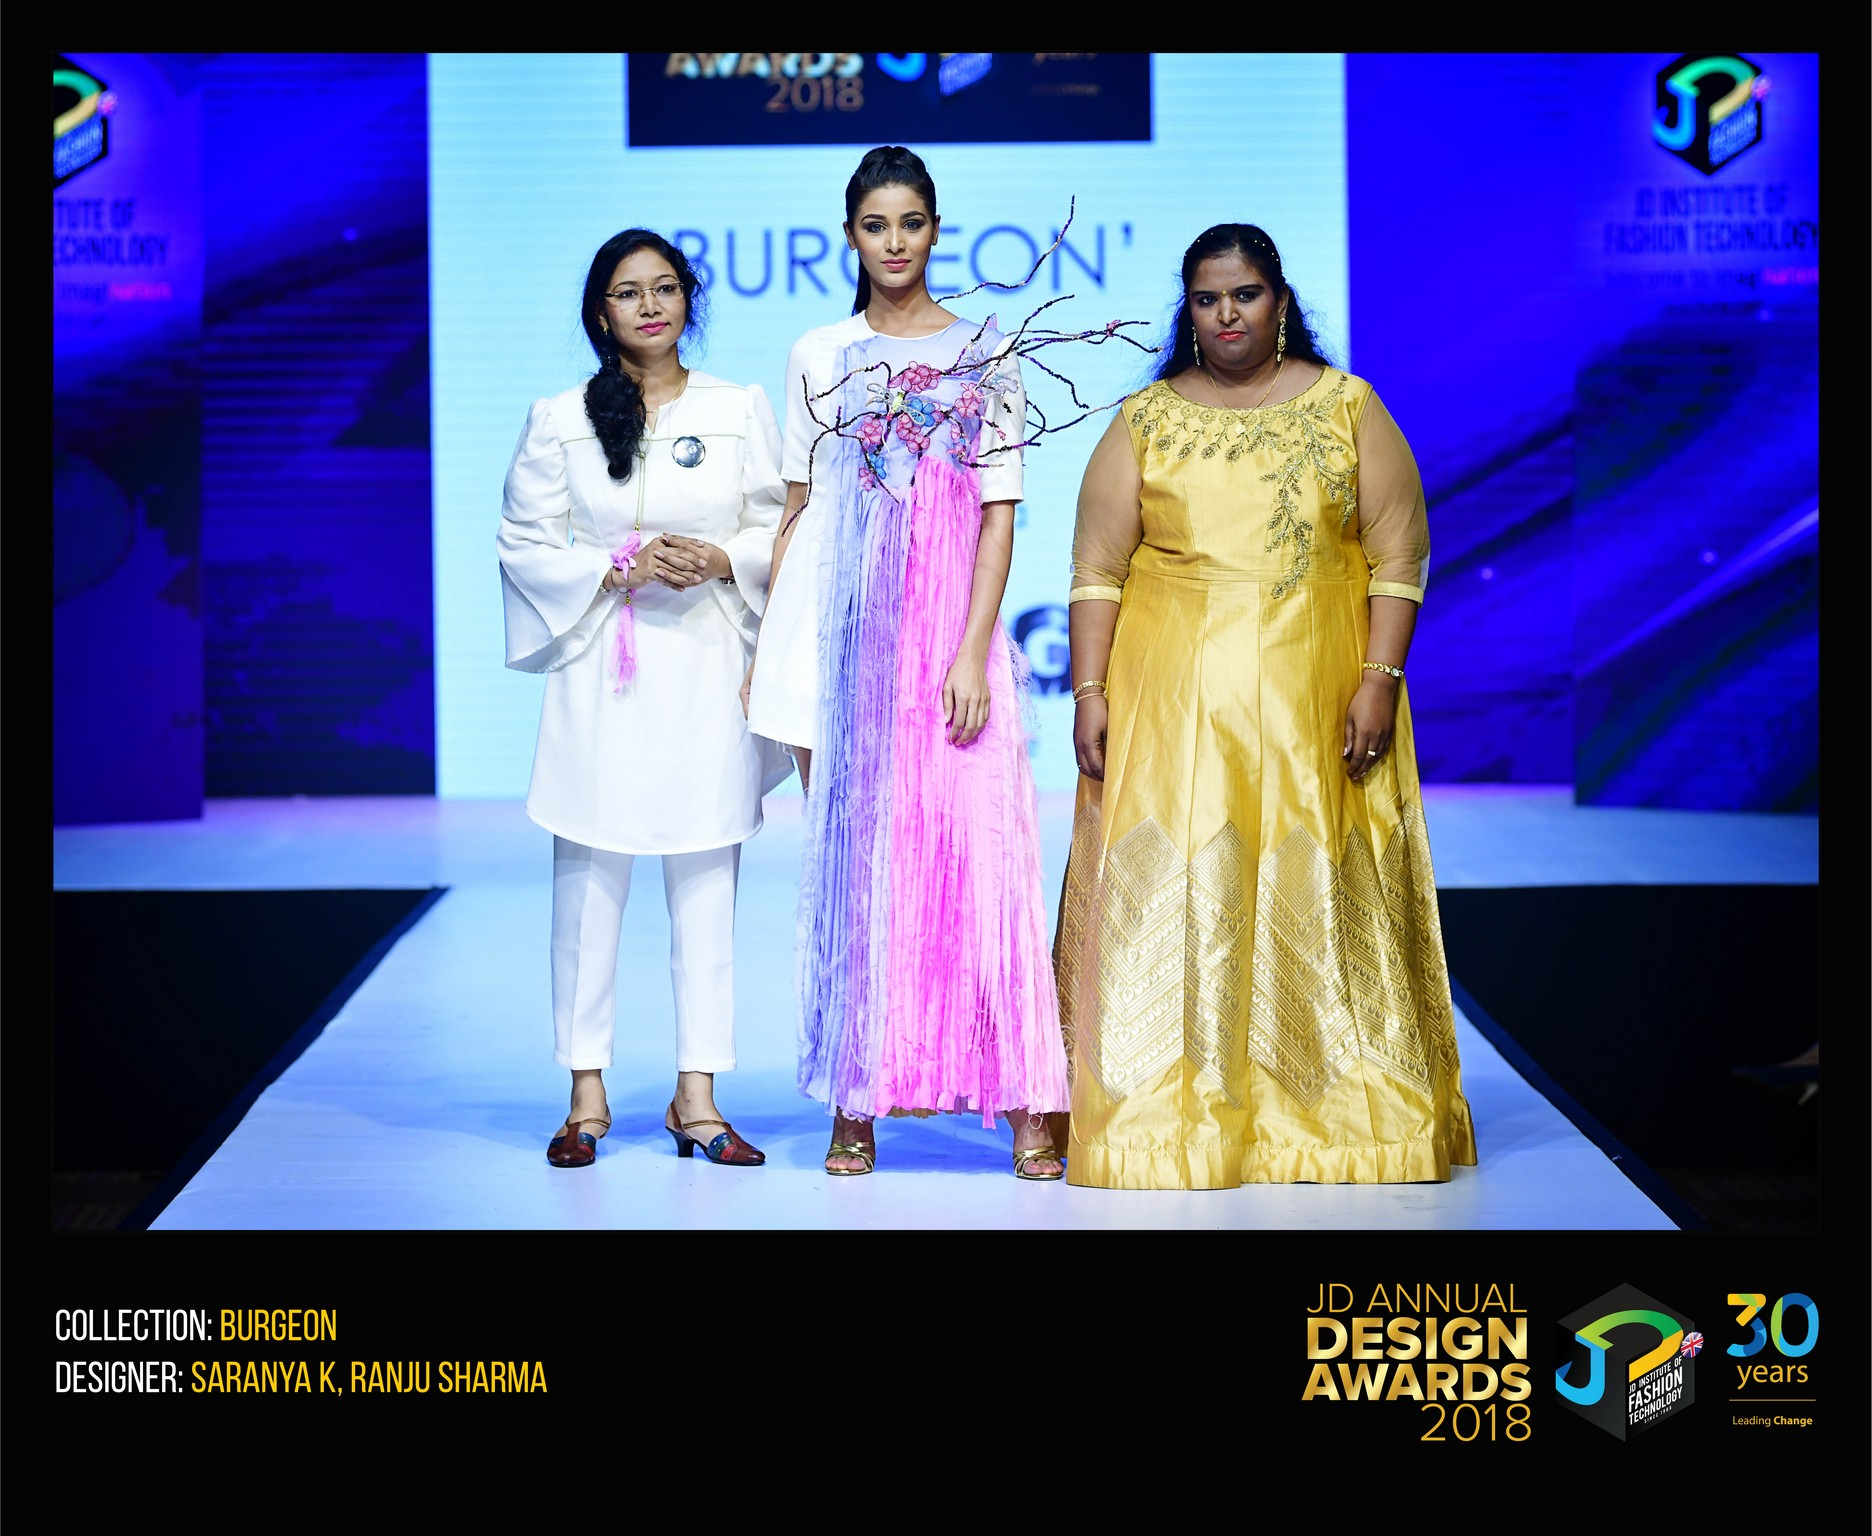 Burgeon – Change – JD Annual Design Awards 2018 | Designer: Ranju, Bhavani and Saranya | Photography : Jerin Nath (@jerin_nath) burgeon – change – jd annual design awards 2018 Burgeon – Change – JD Annual Design Awards 2018 BURGEON final